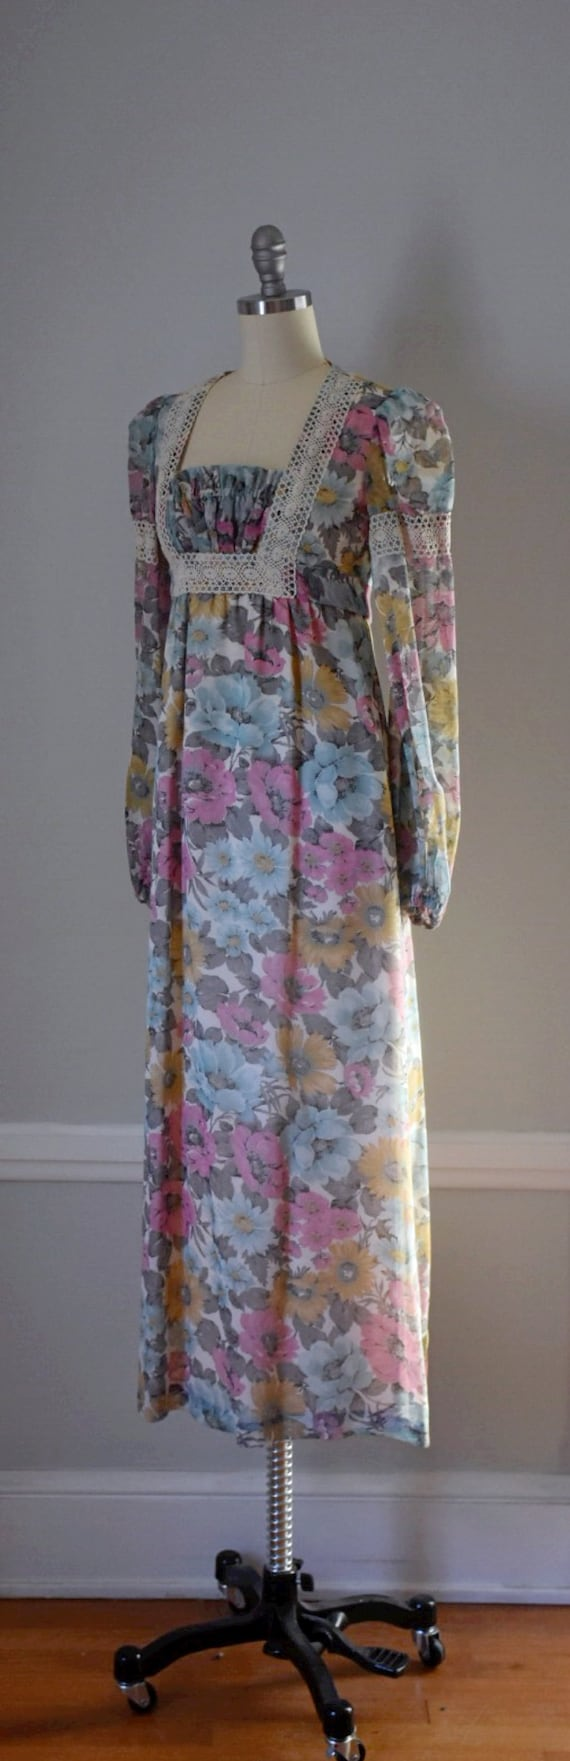 Vintage 70s Prairie Dress - image 4